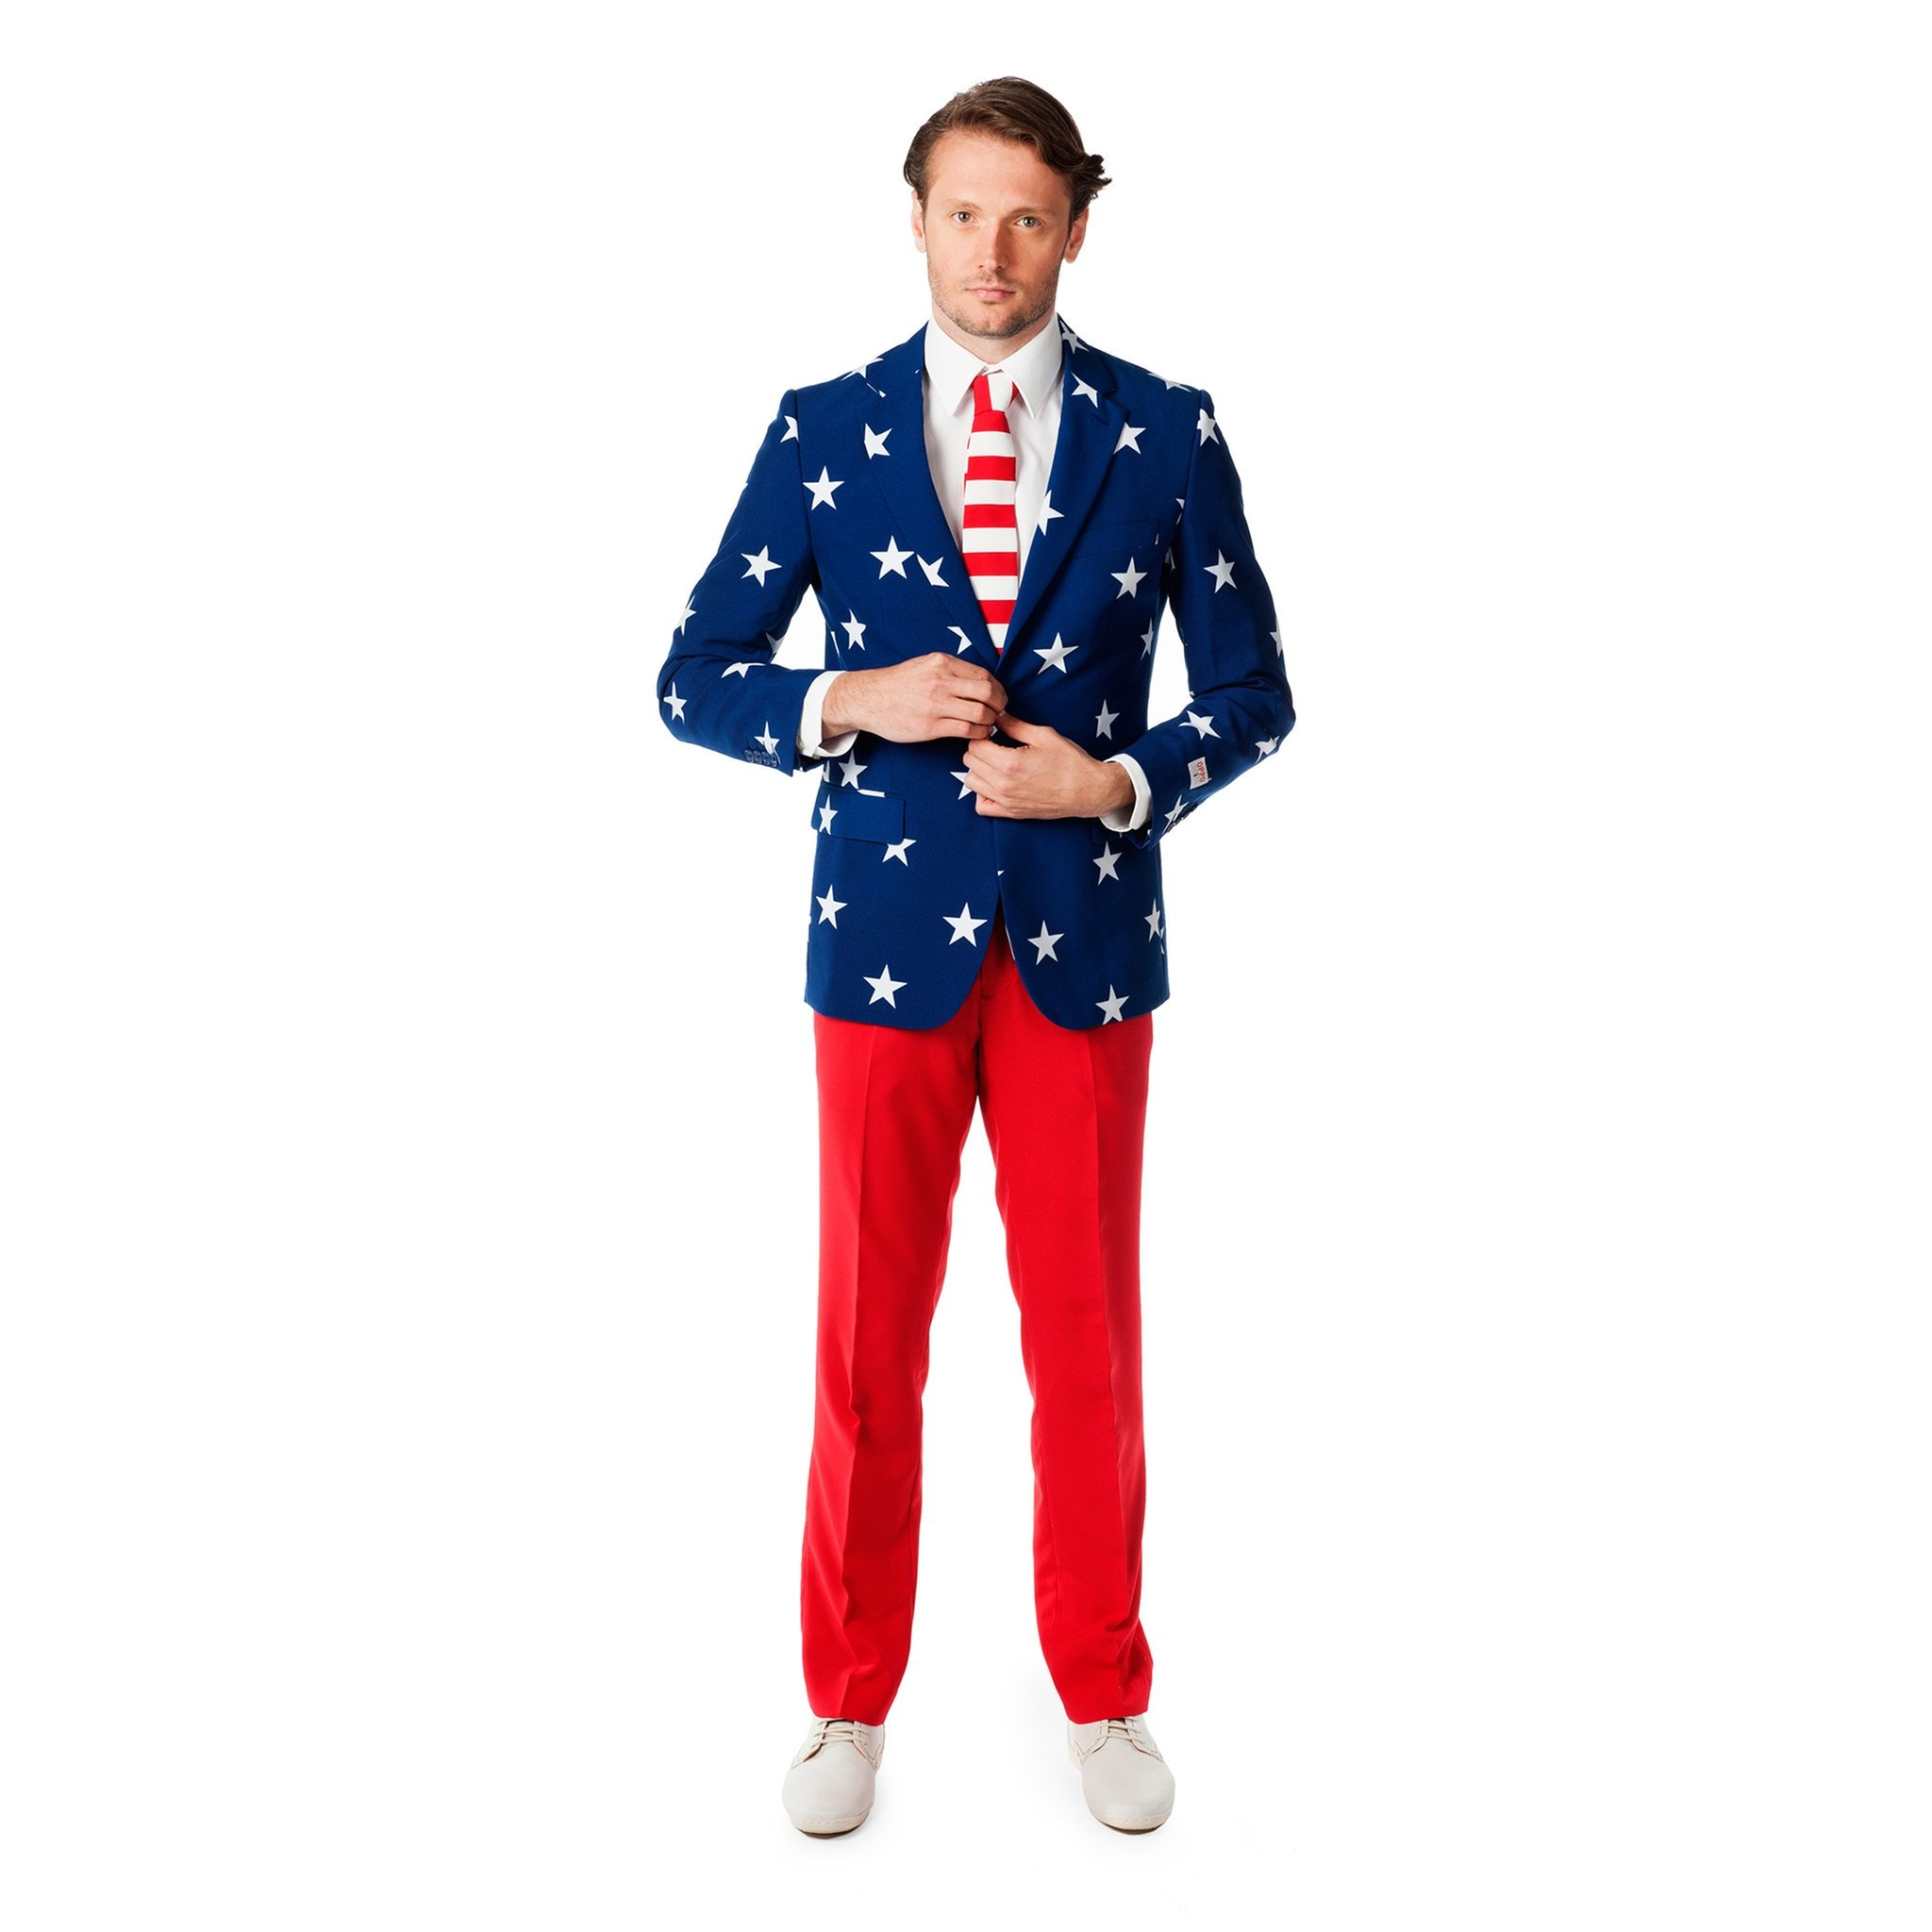 OppoSuits Men's Stars and Stripes Party Costume Suit, Blue/Red/White, 50